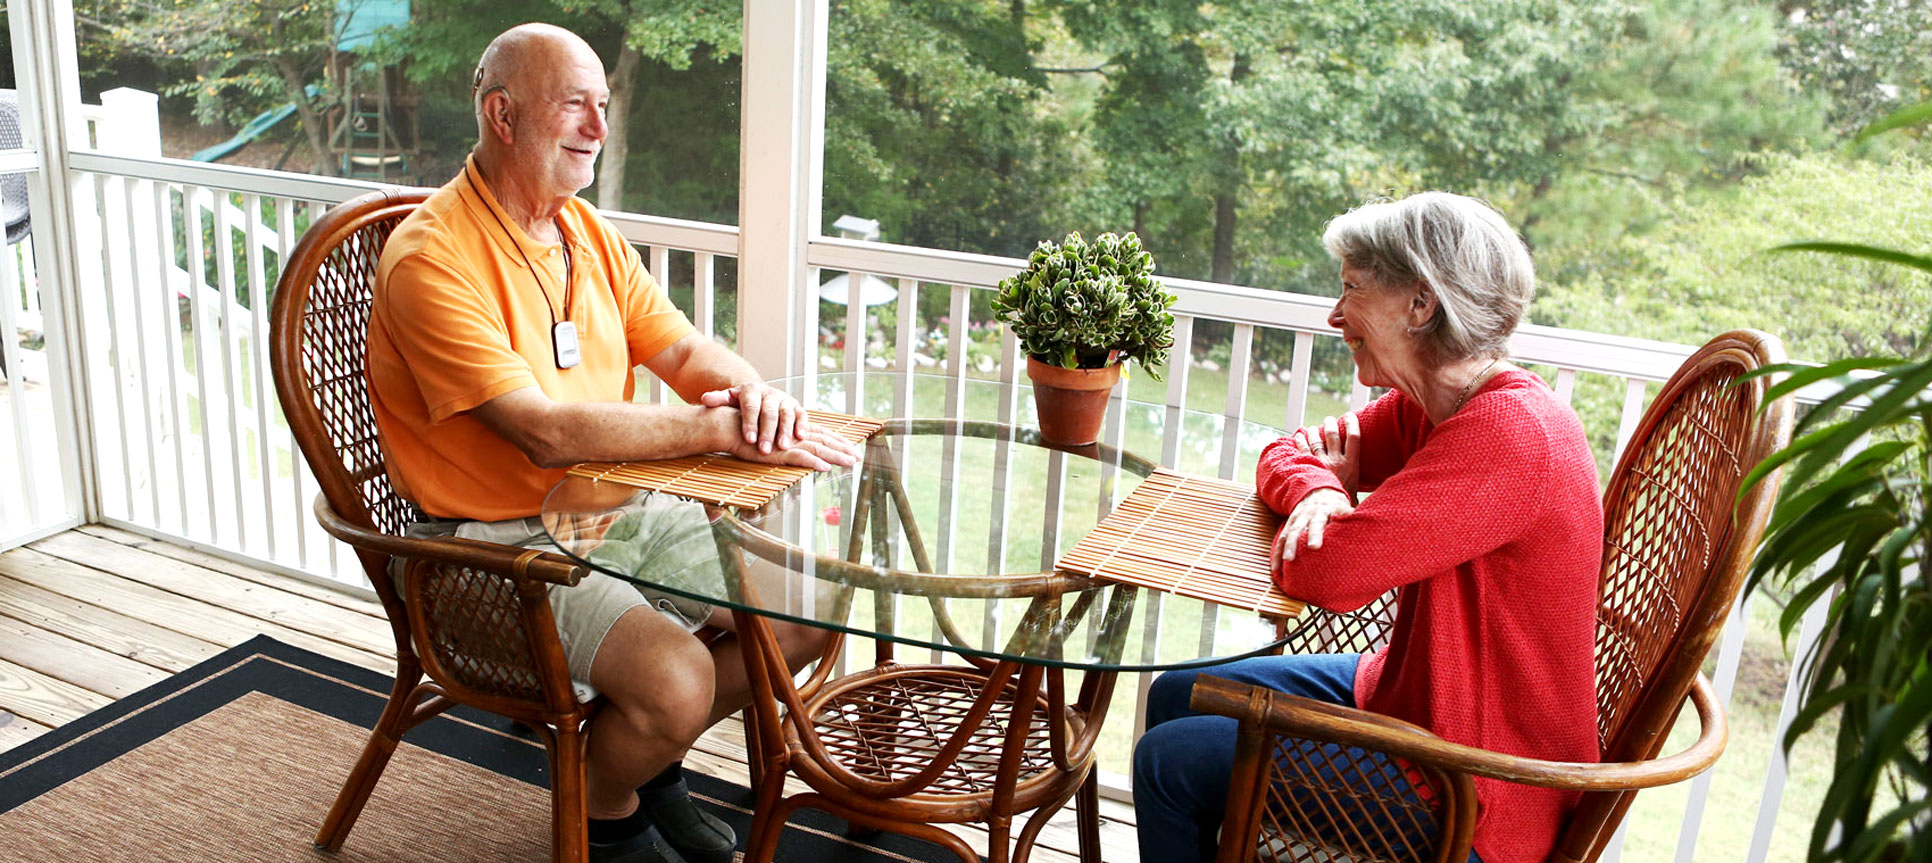 Bryan Seiler can now chat with his wife Amelia during breakfast thanks to his cochlear implant.